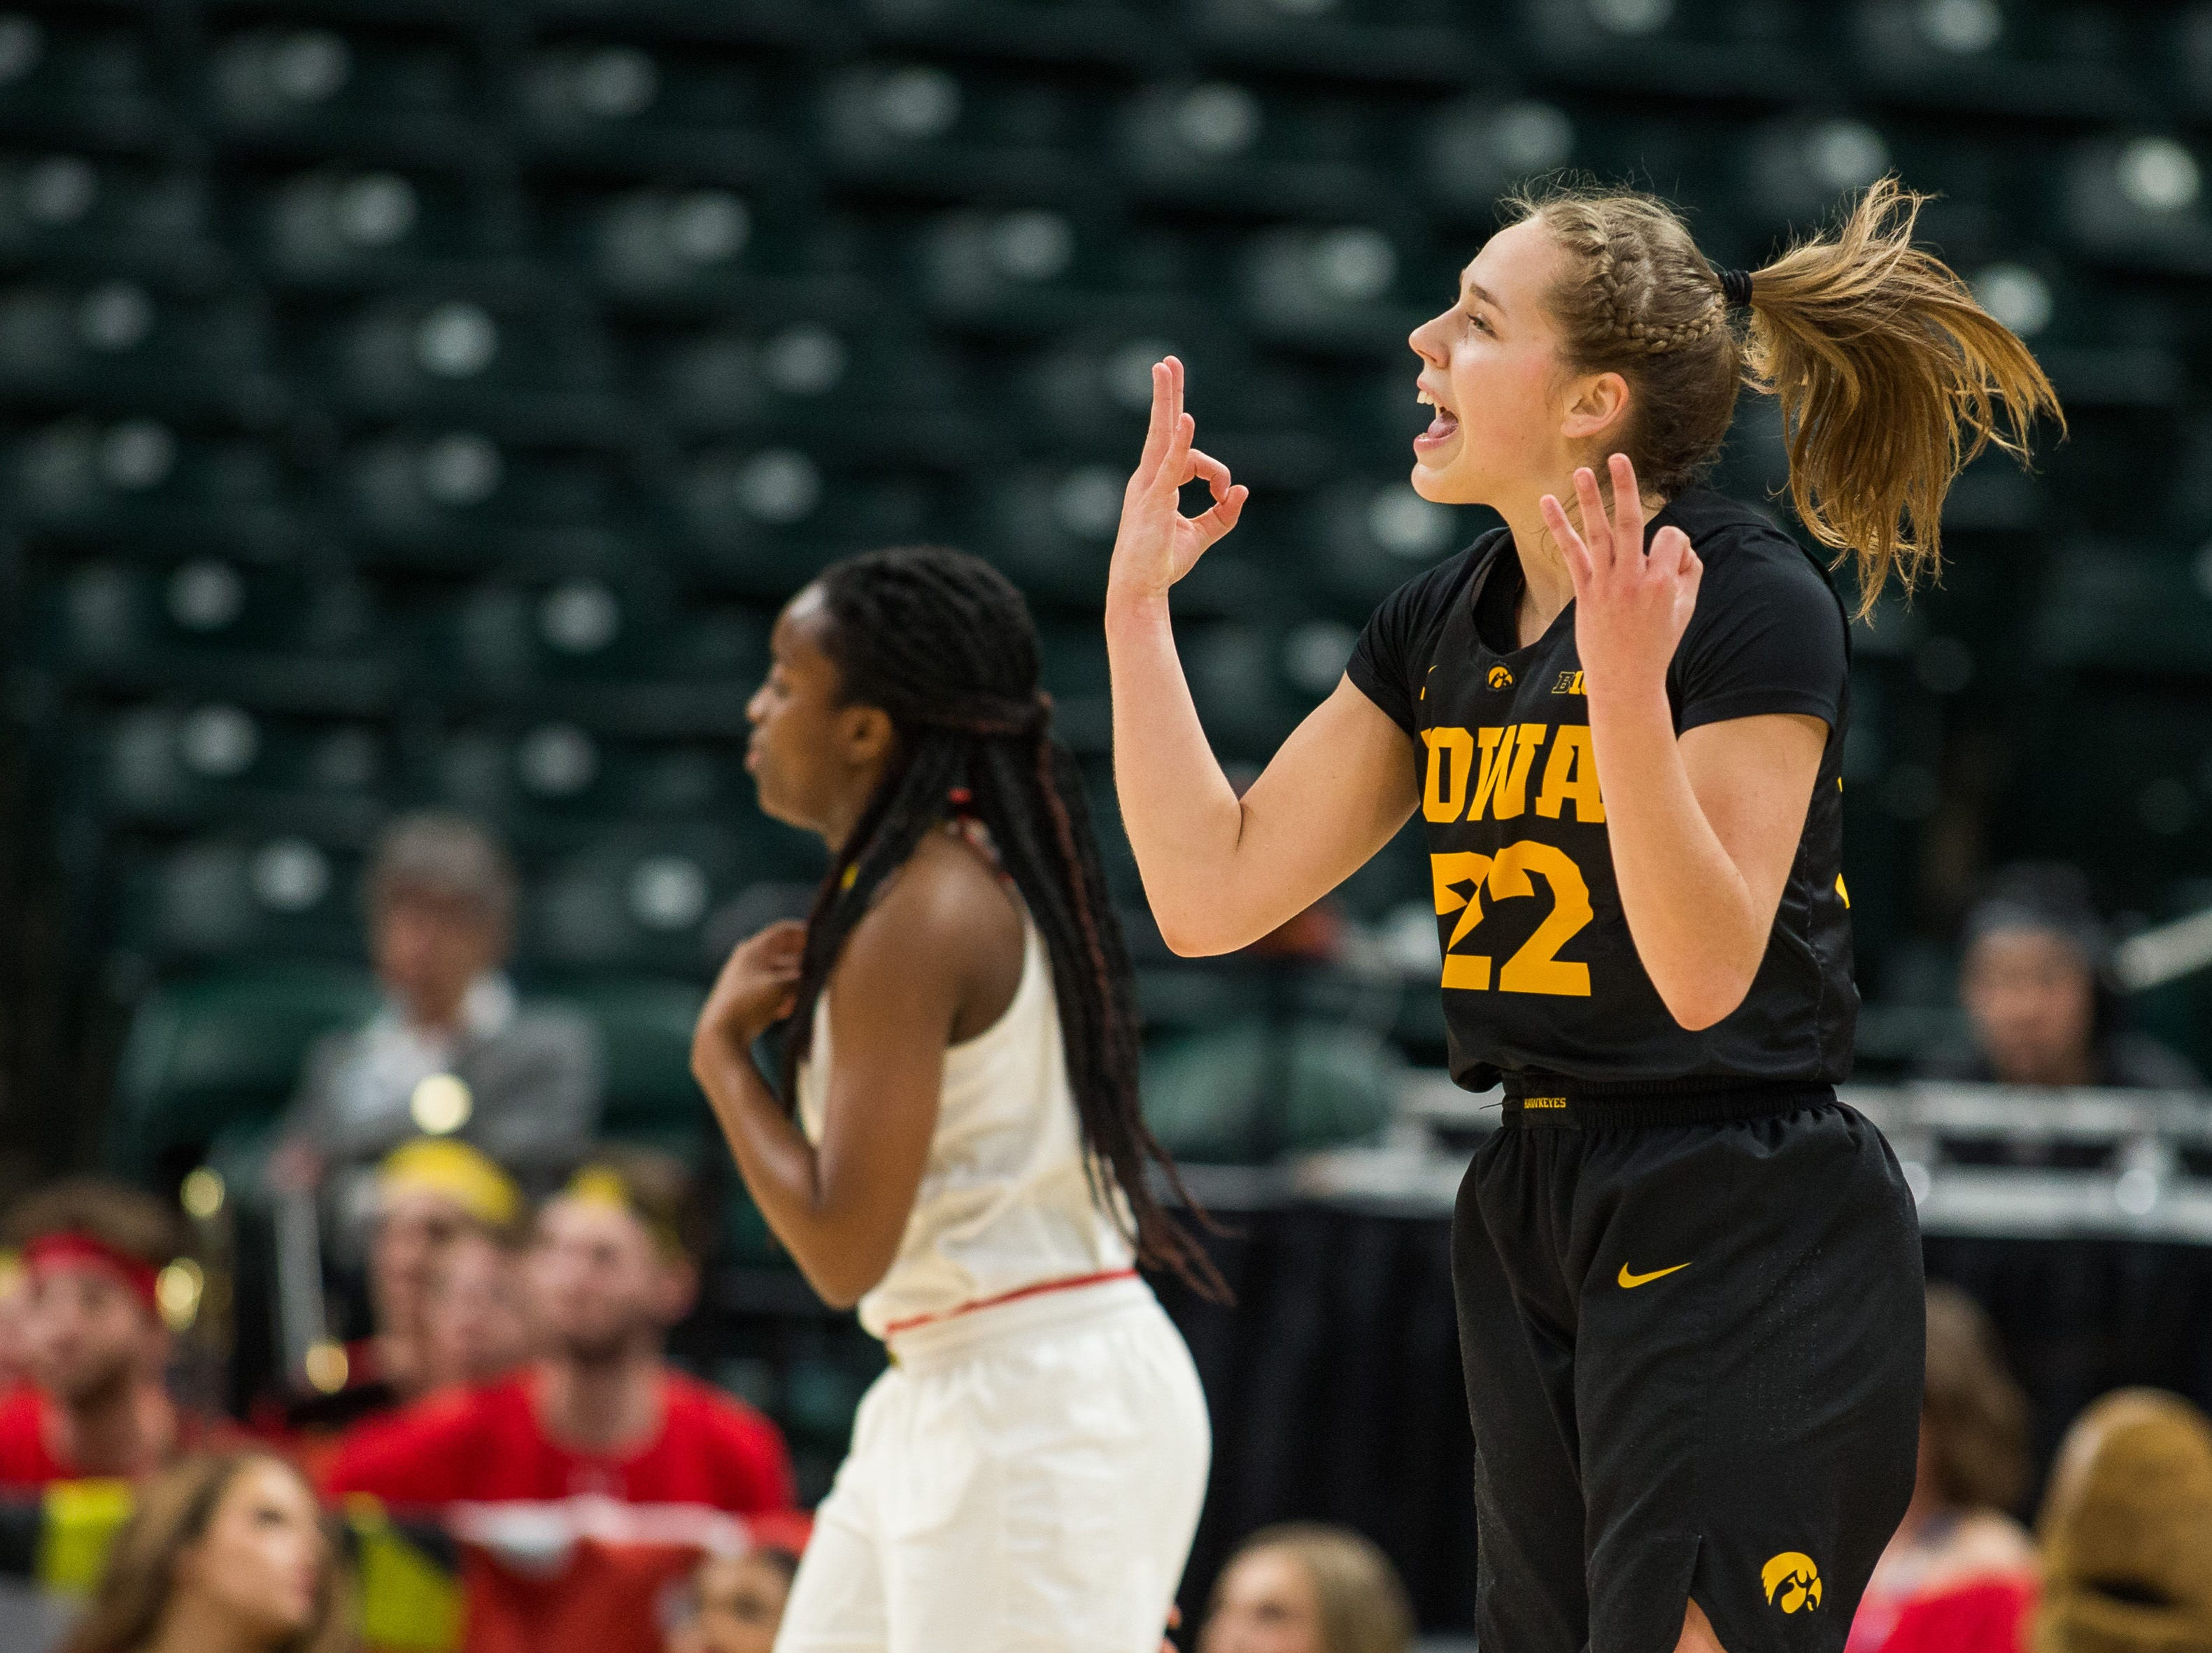 Iowa Hawkeyes guard Kathleen Doyle (22) reacts to a made three point basket in the first half against the Maryland Terrapins in the women's Big Ten Conference Tournament at Bankers Life Fieldhouse.